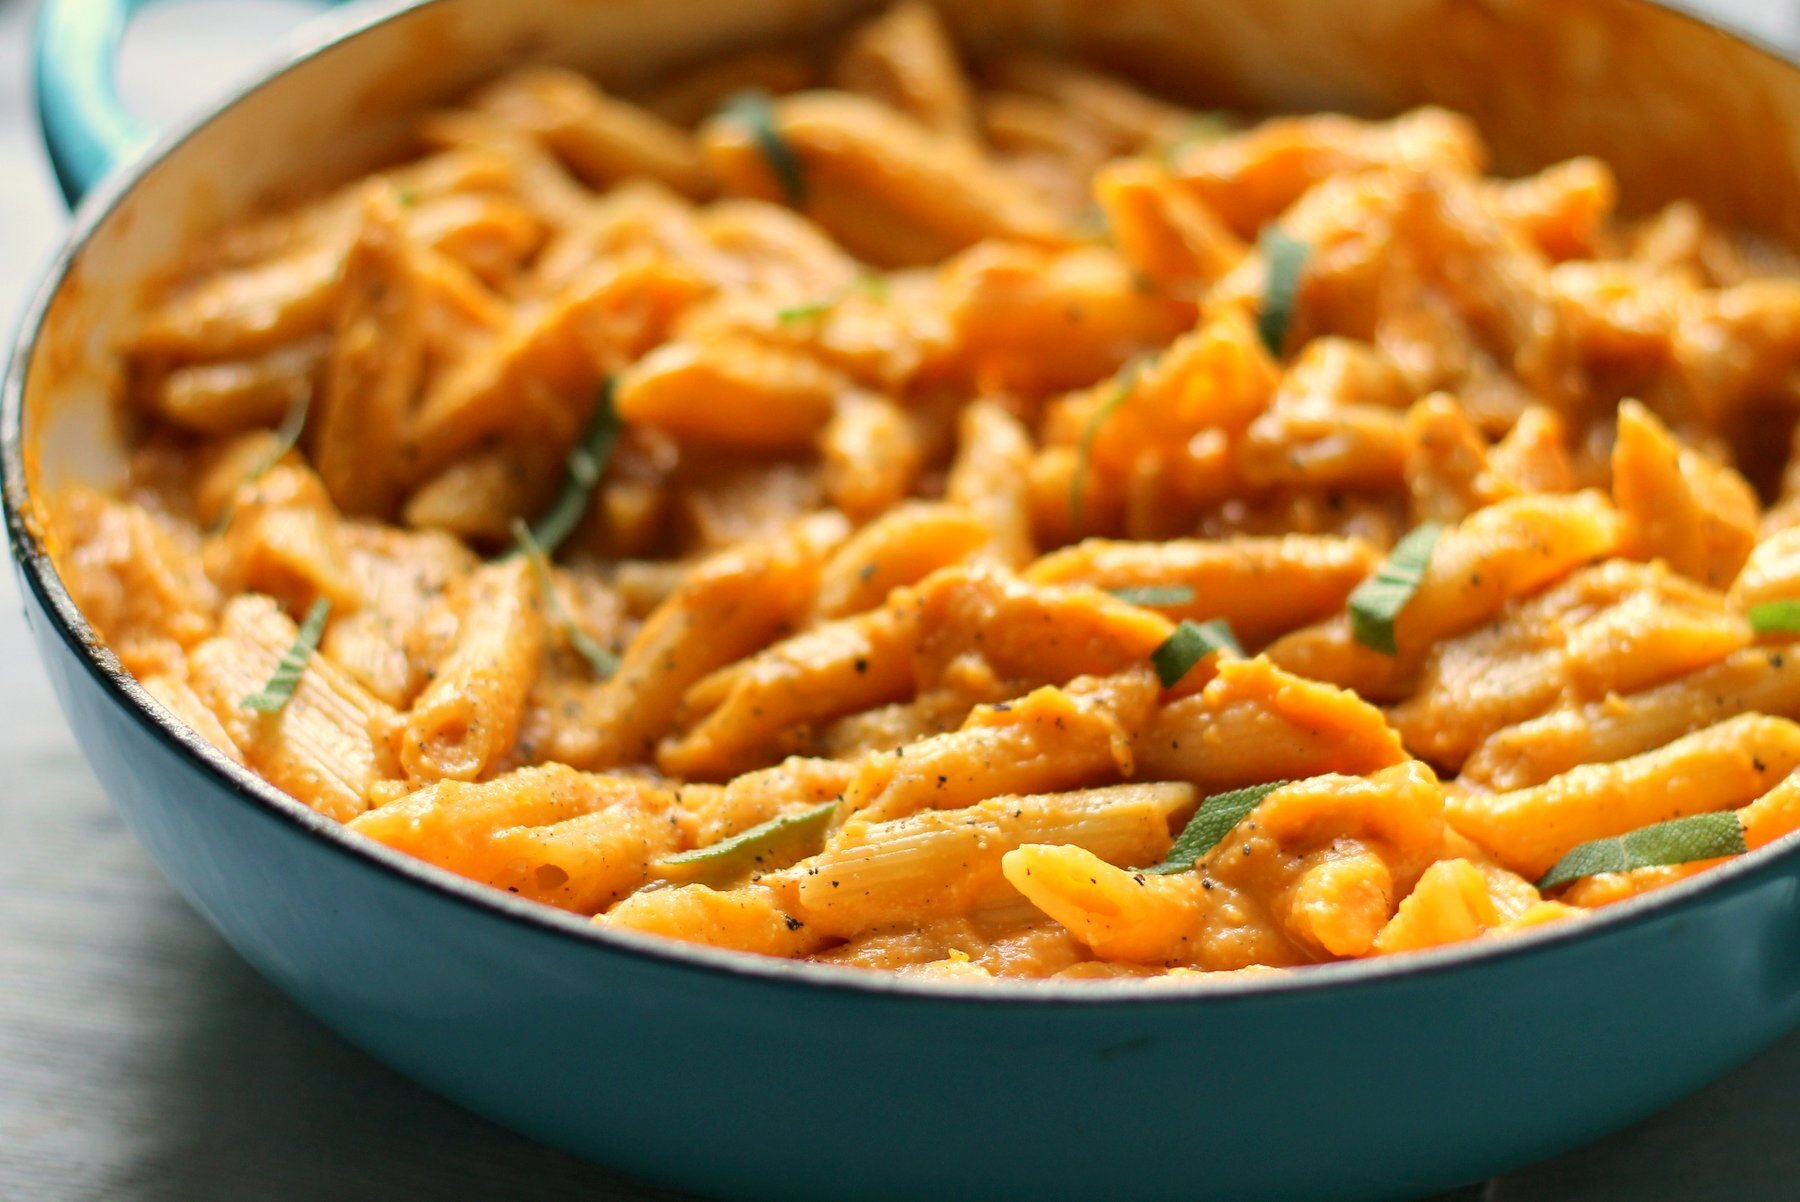 Vegan creamy pasta with butternut and truffle oil